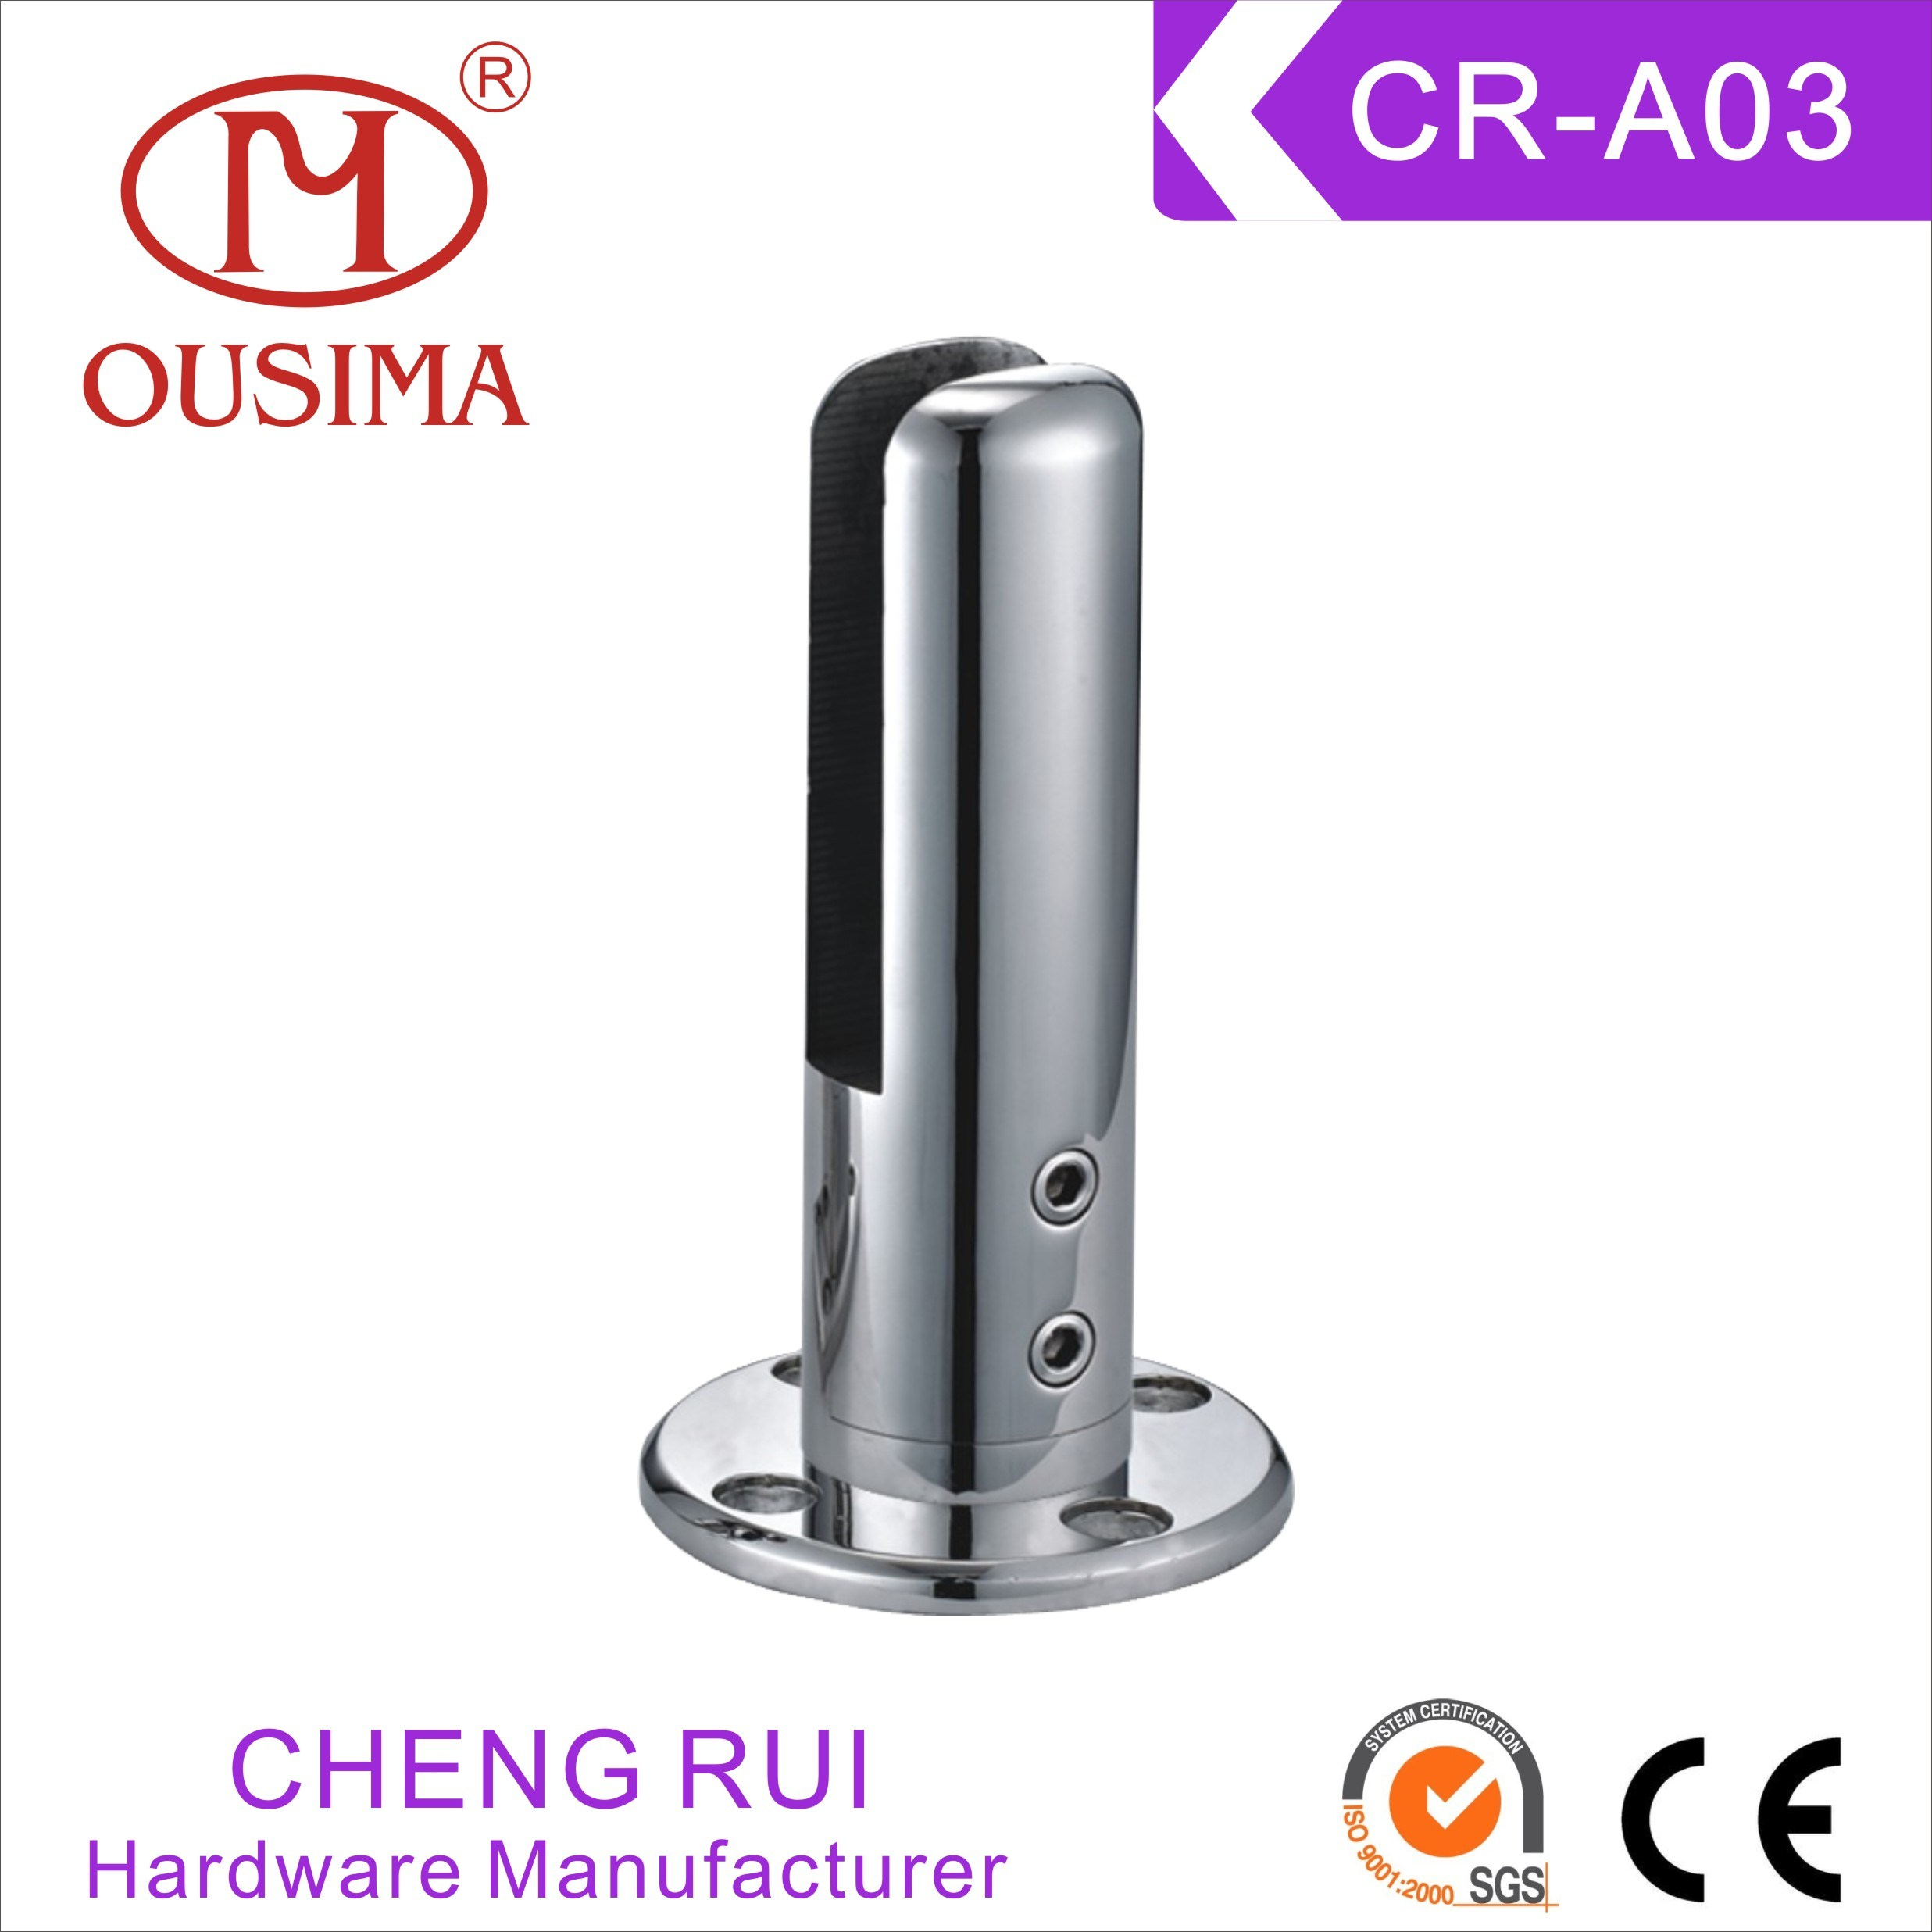 Farmeless Glass Balustrade Stainless Steel Spigot Used in Swimming Pool or Fence (CR-A03)